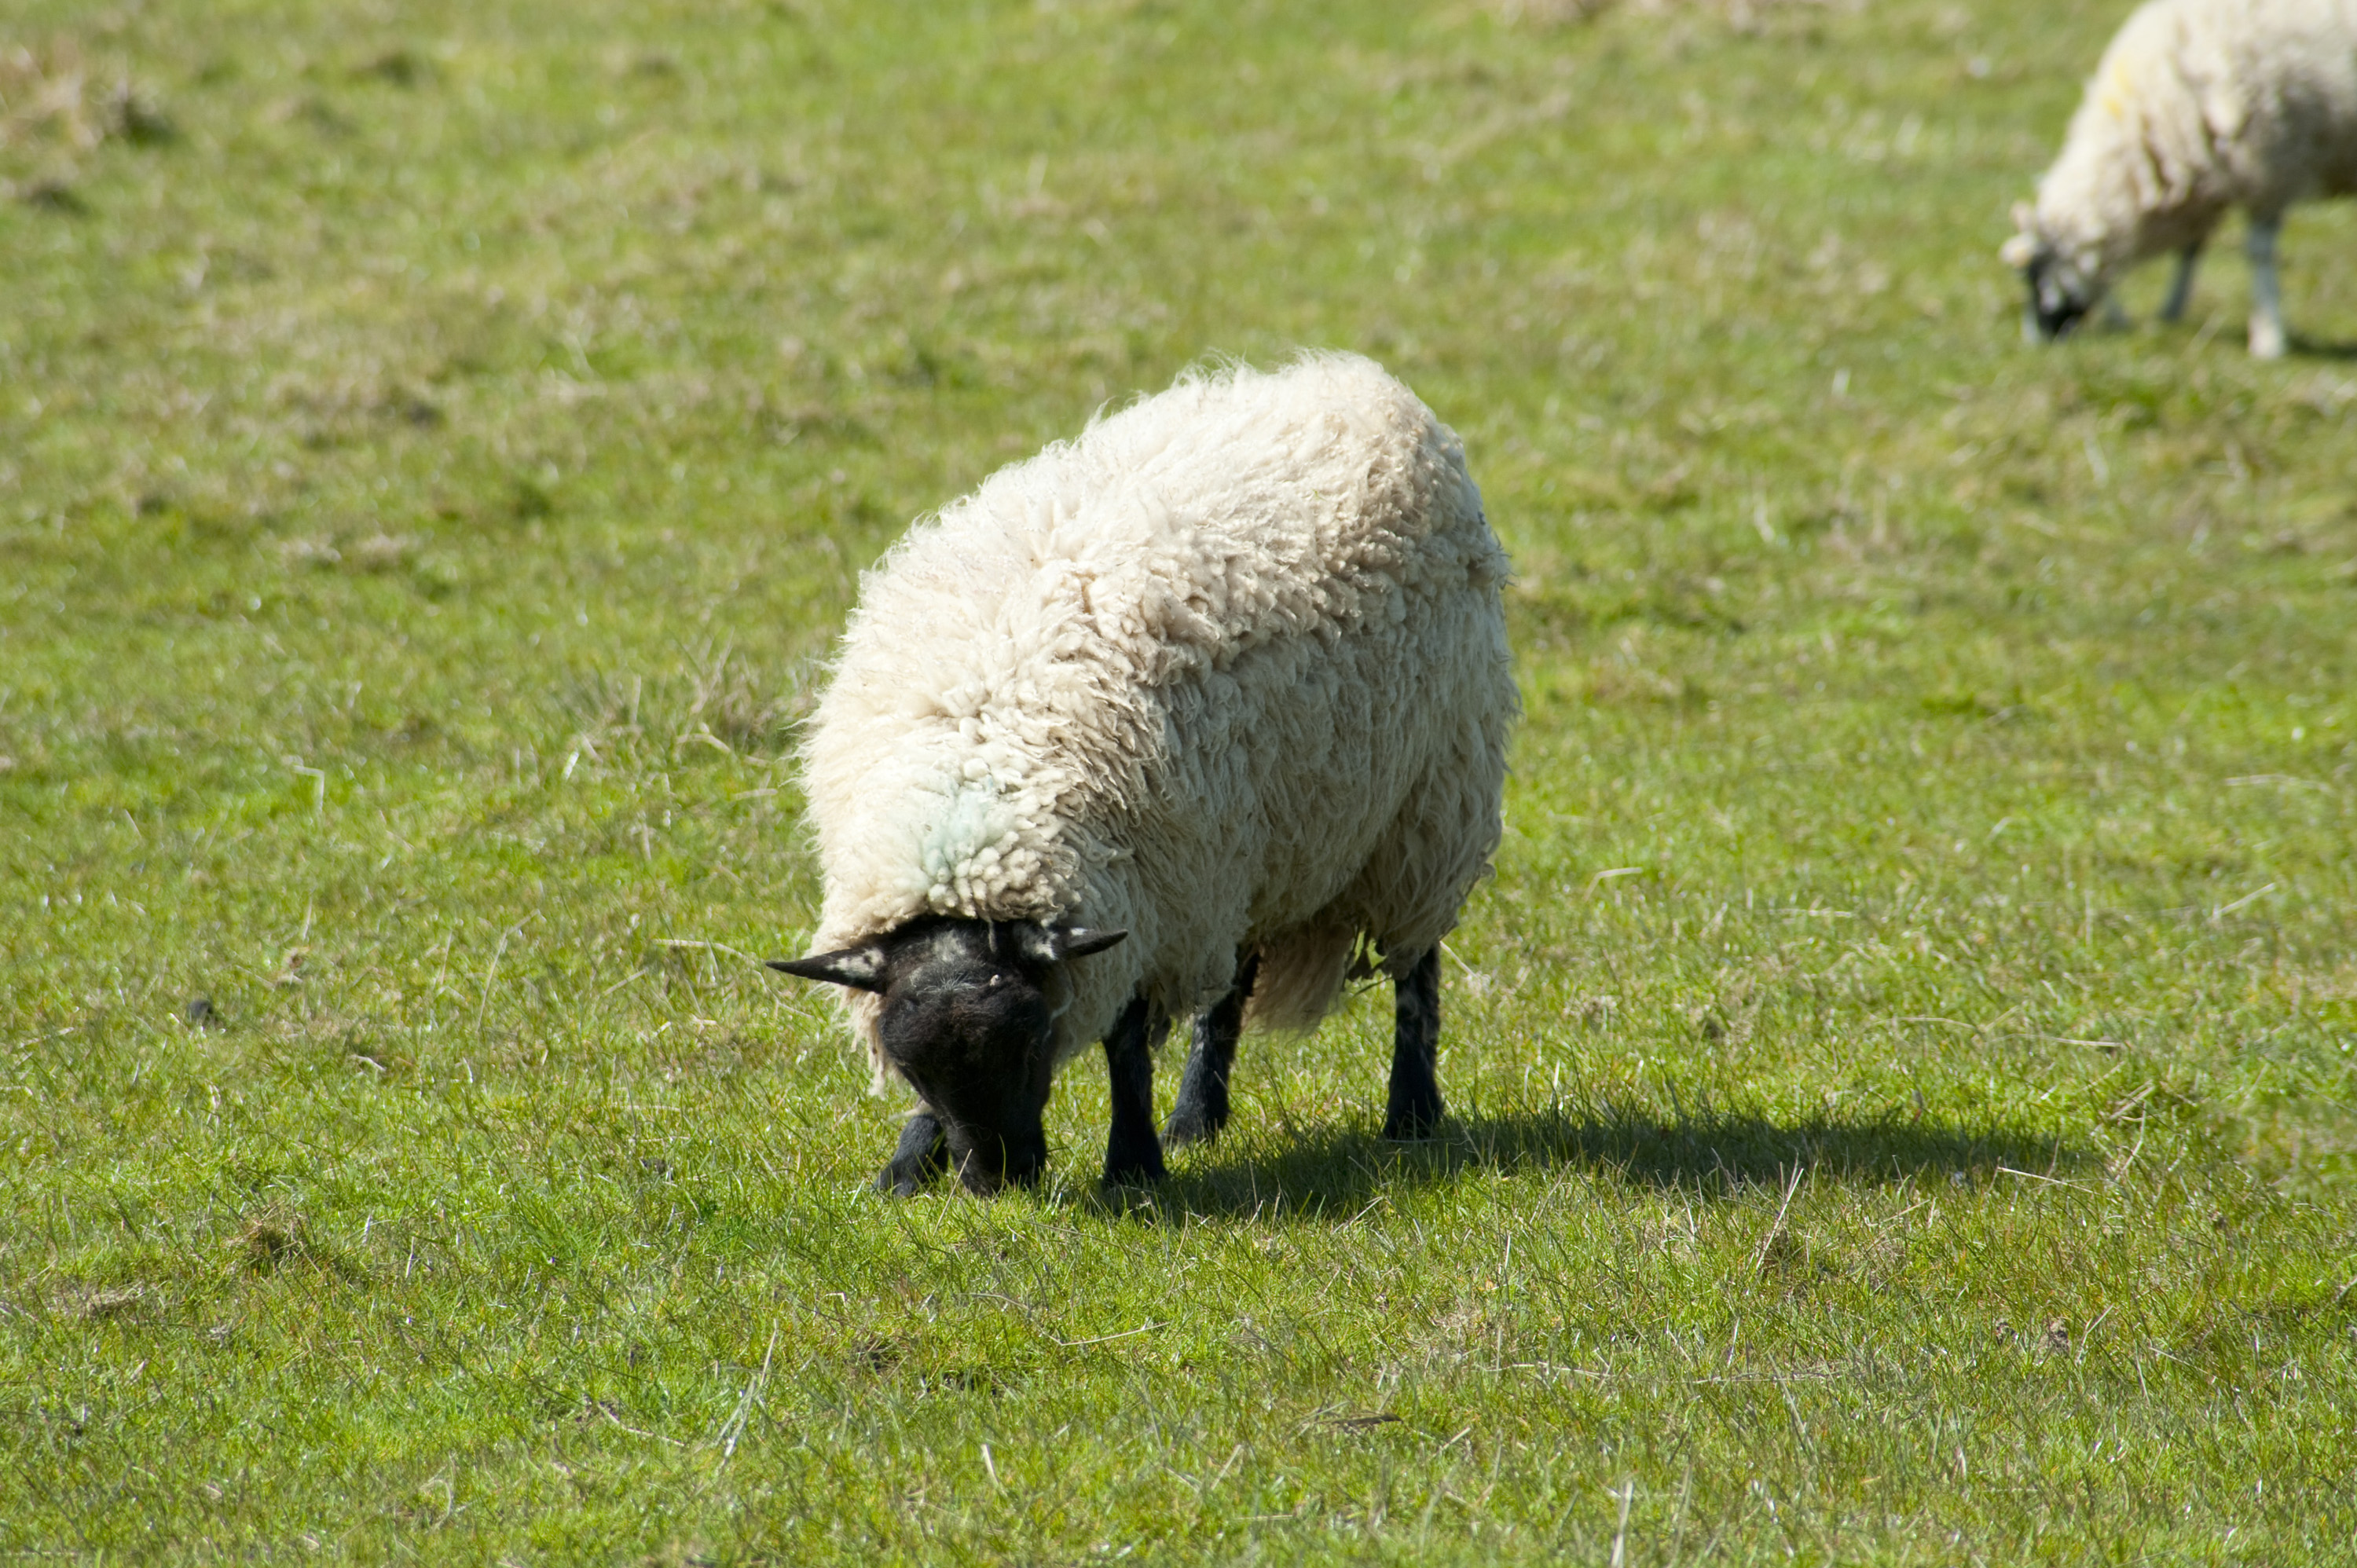 Free Stock Photo 6391 Woolly sheep grazing in pasture | freeimageslive